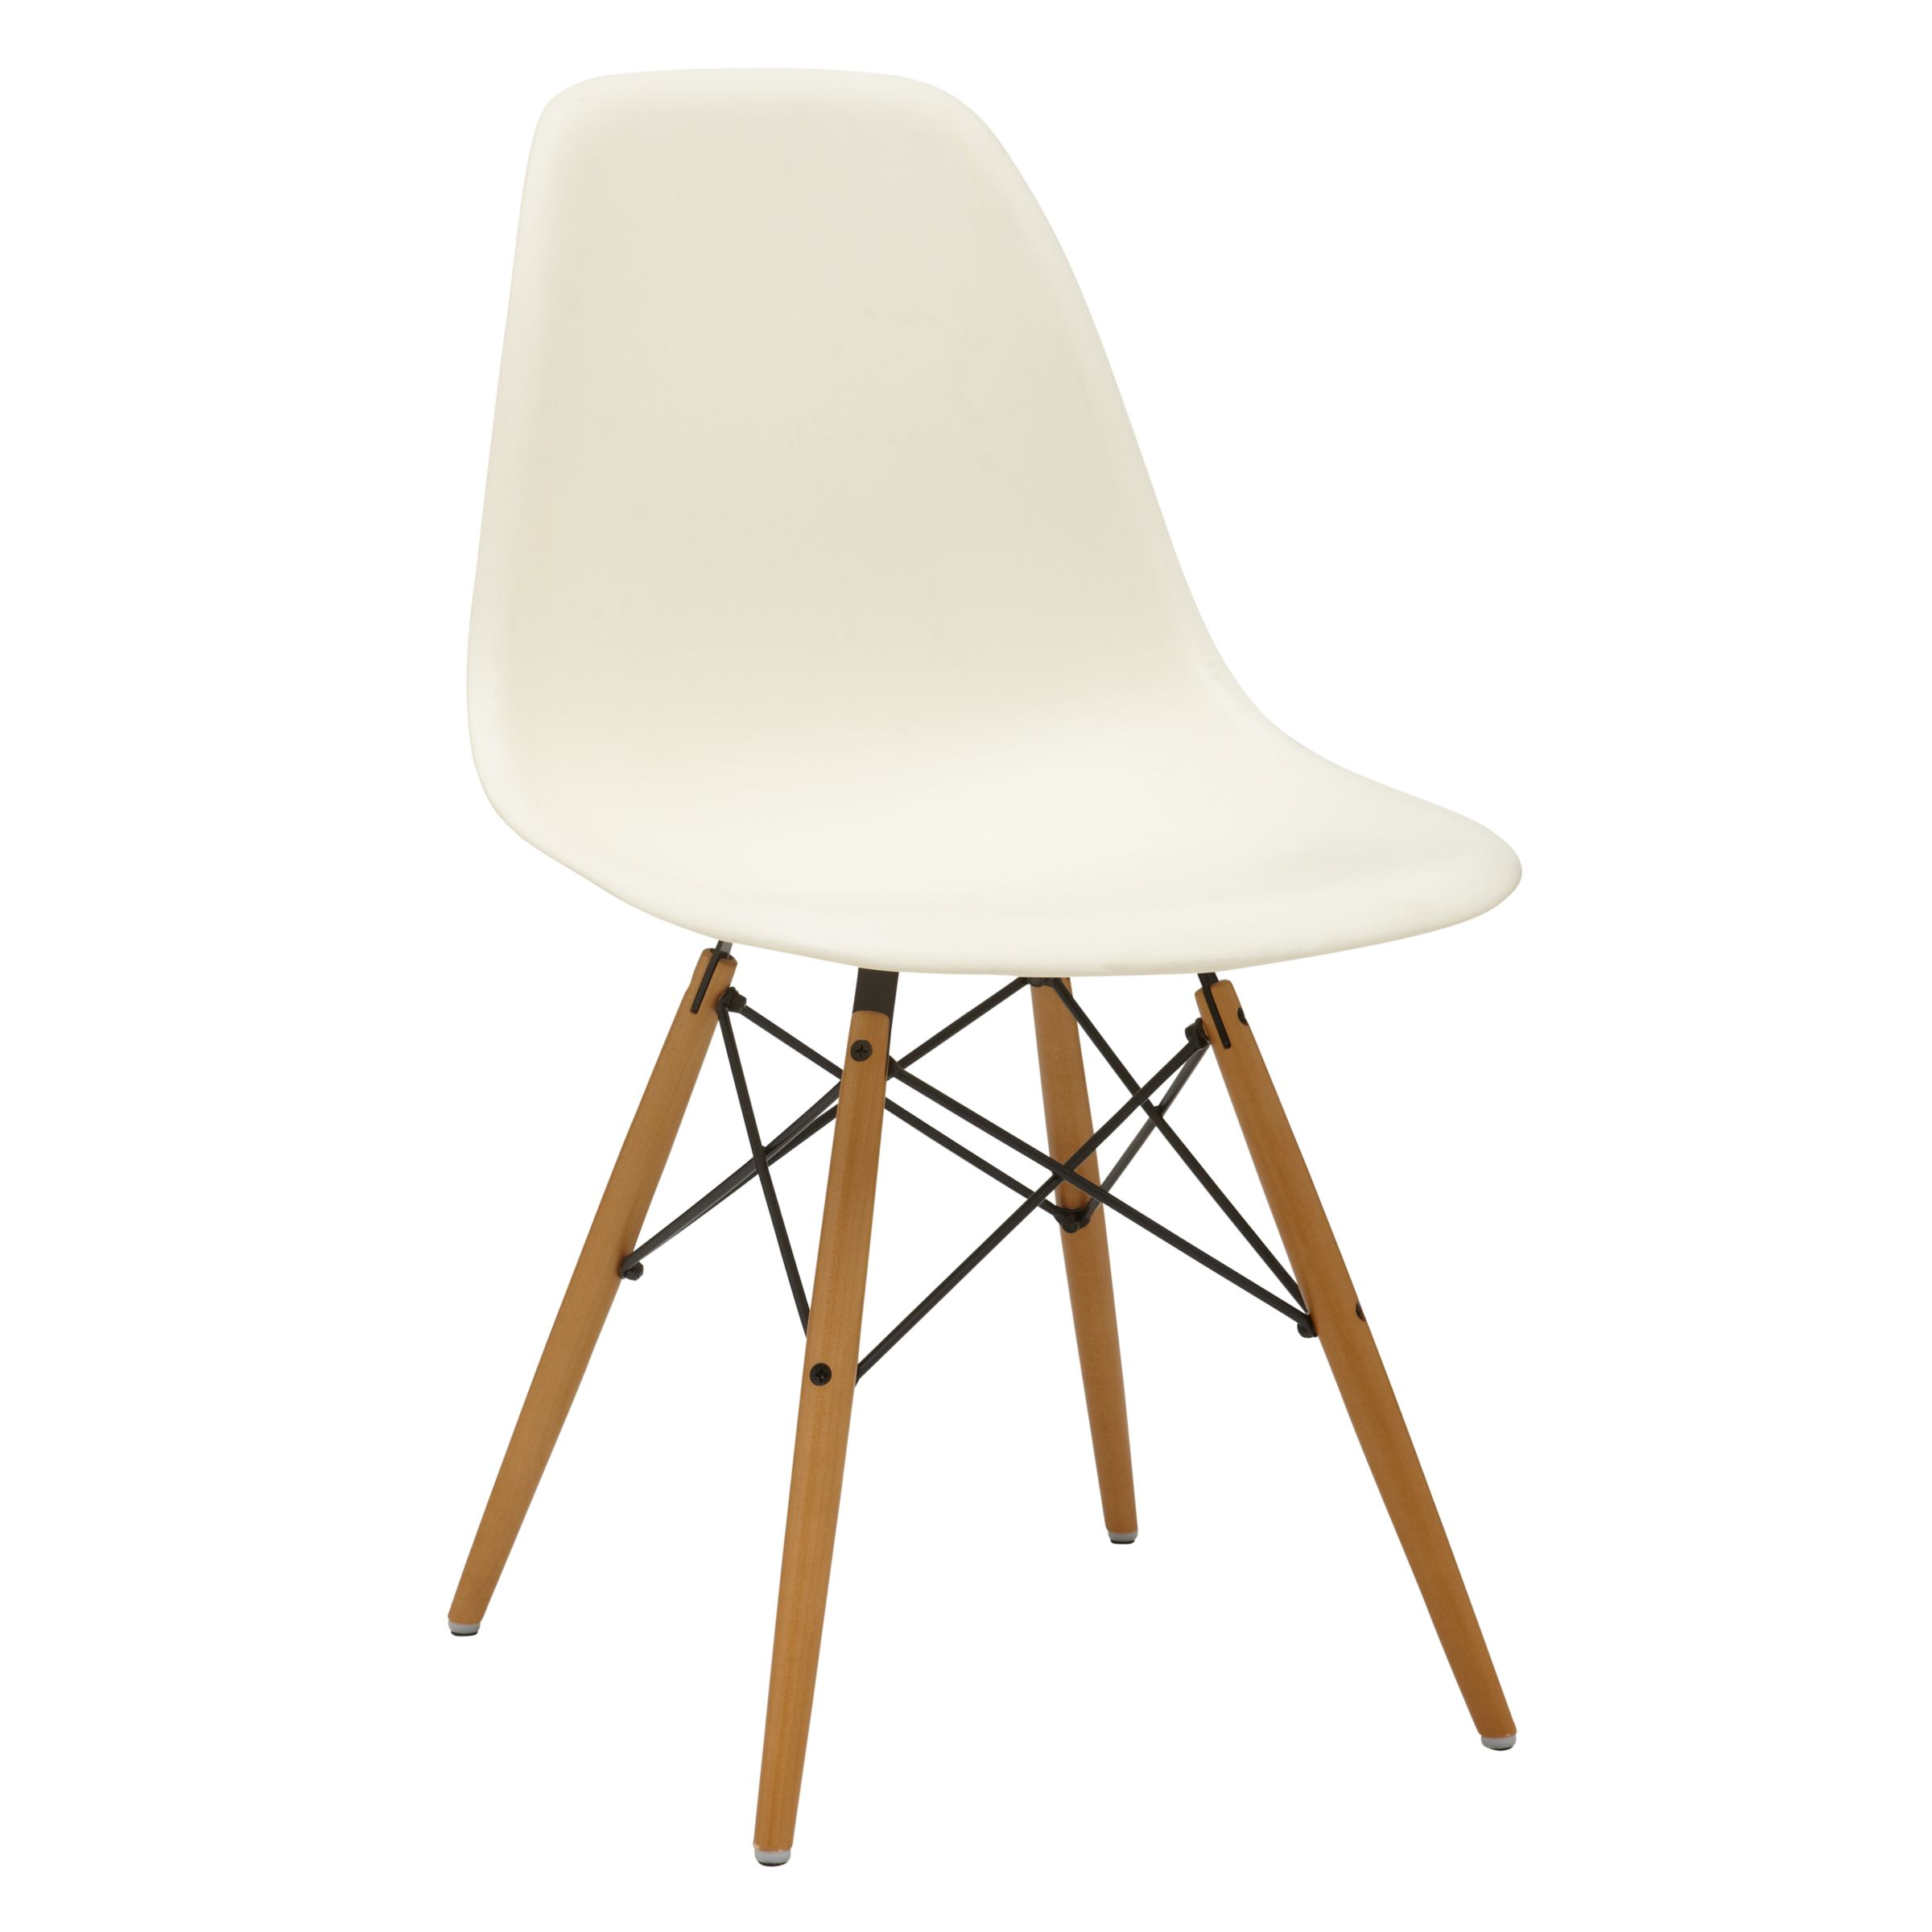 Vitra Eames Side Chair Vitra Eames Dsw Side Chair Light Maple Leg At John Lewis Partners